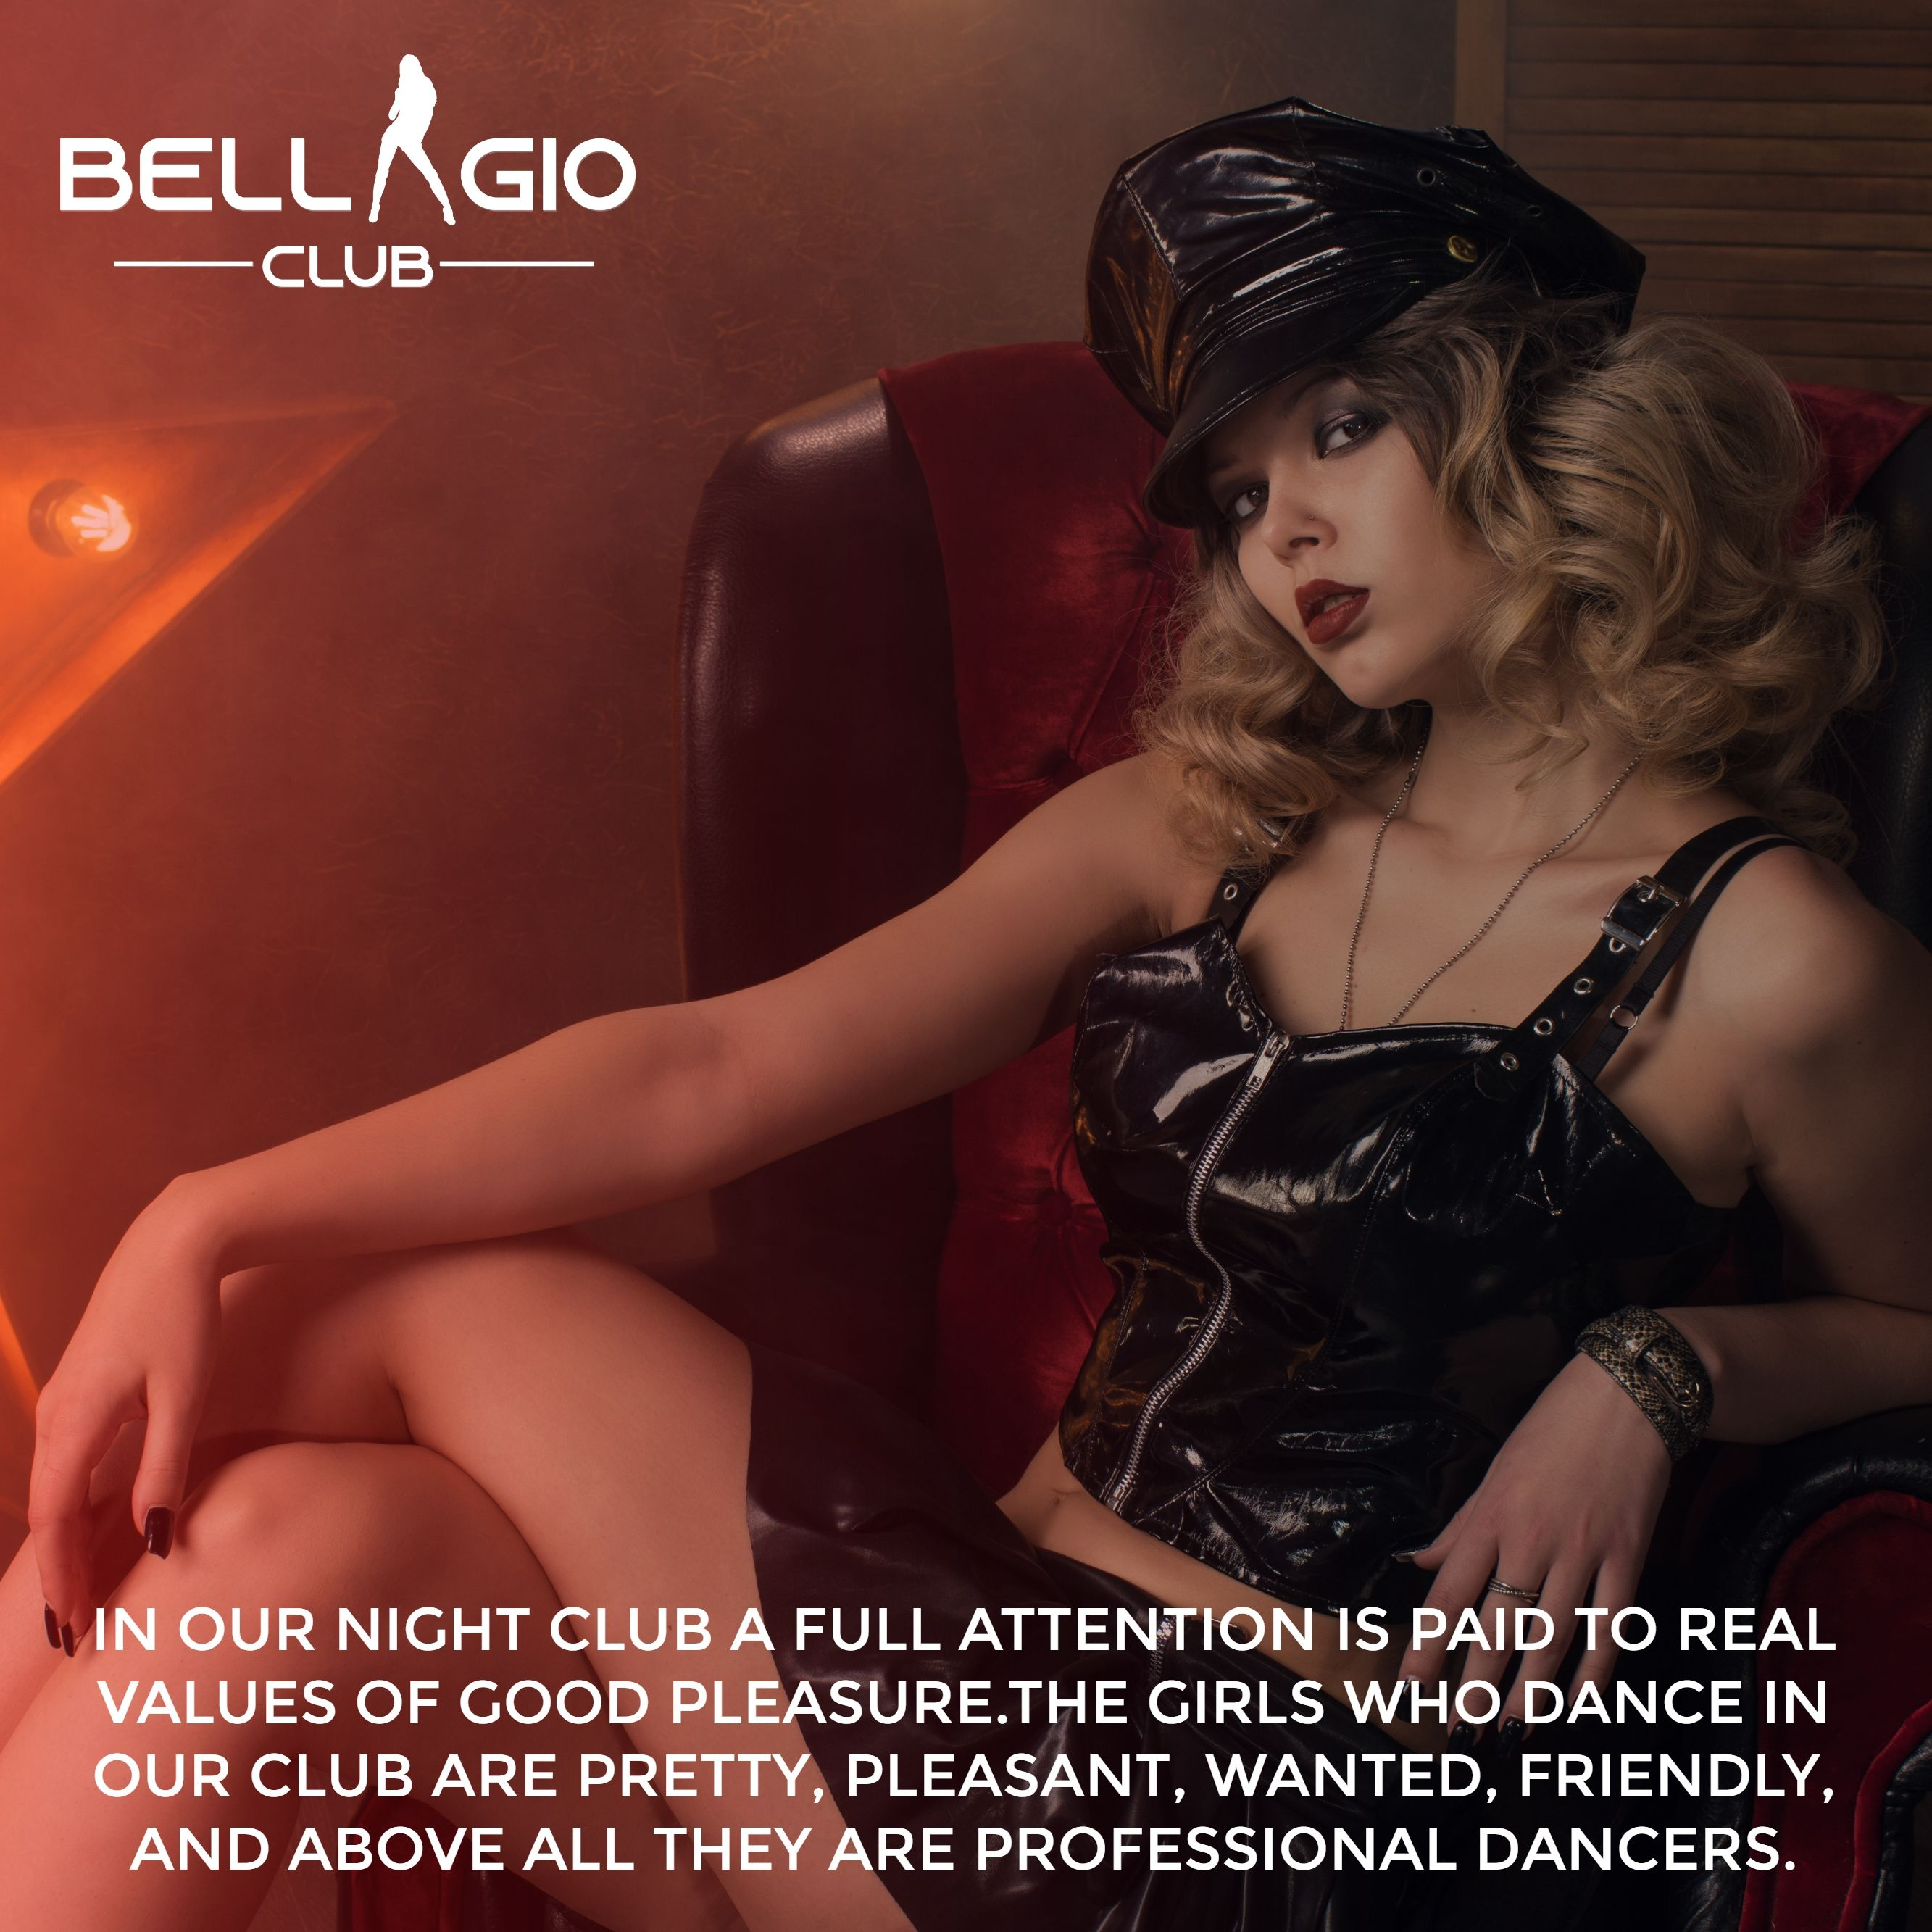 In Our Night Club A Full Attention Is Paid To Real Values Of Good